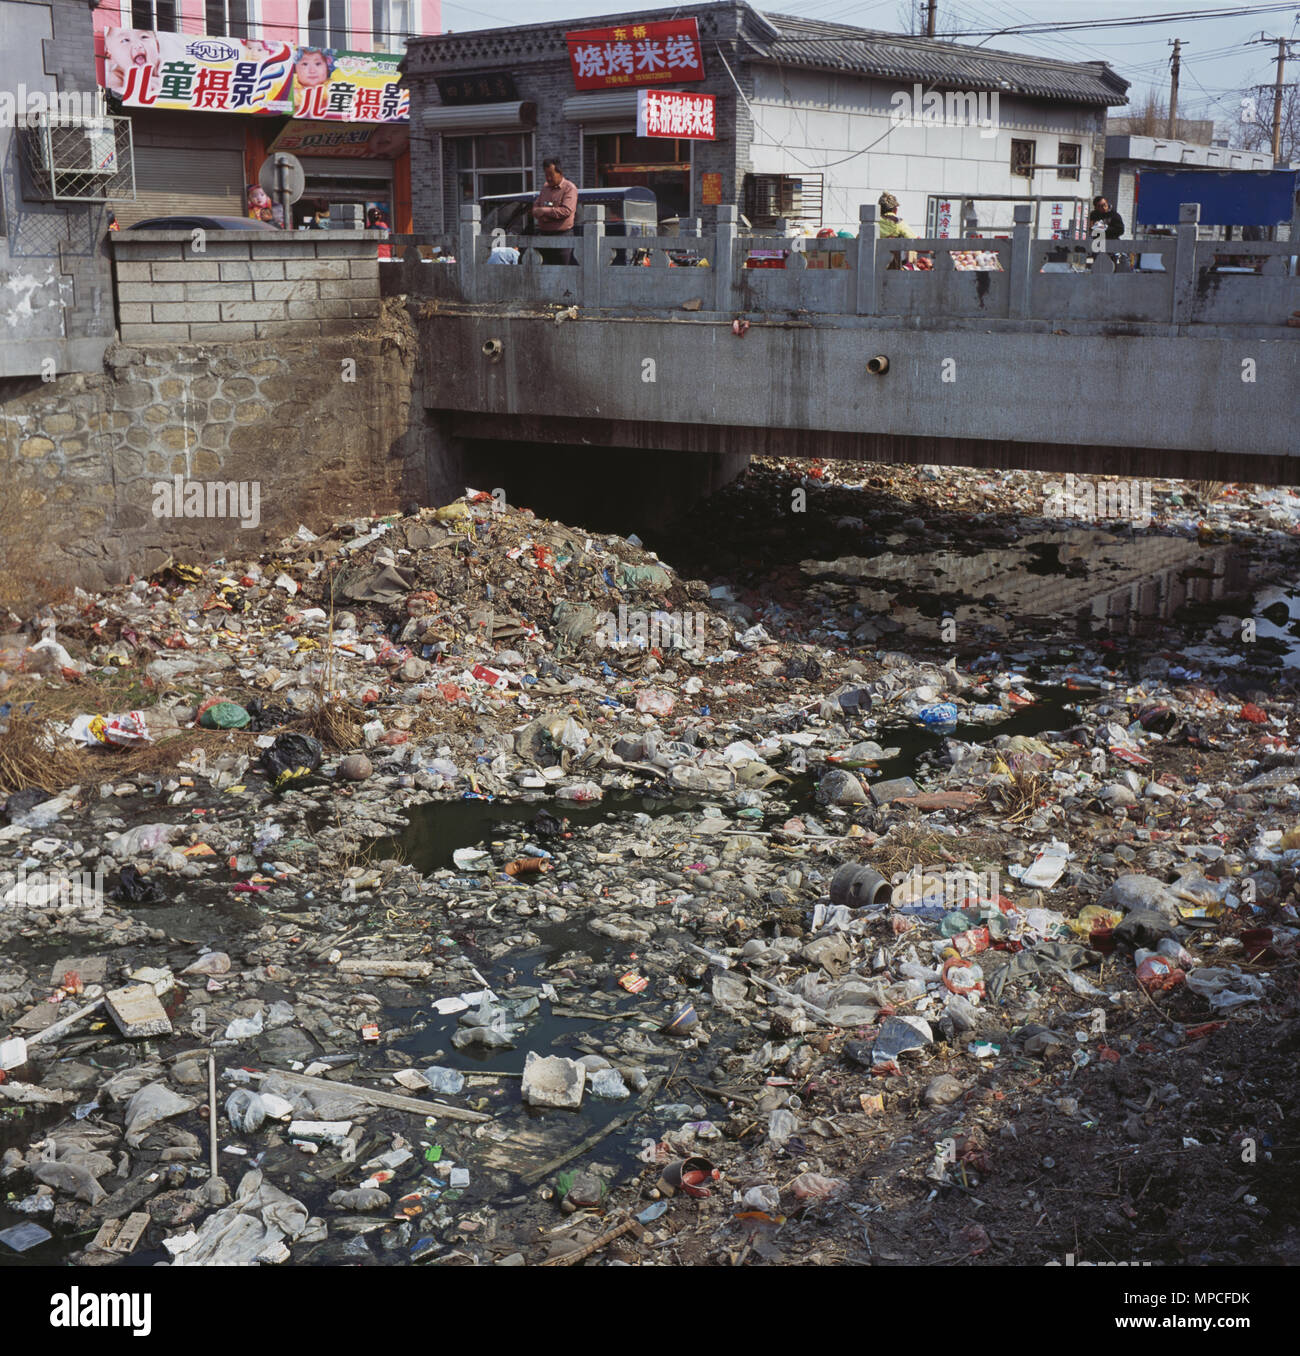 A town river is severely polluted by garbage in Shengfang, Langfang, Hebei province, China. 2013 - Stock Image